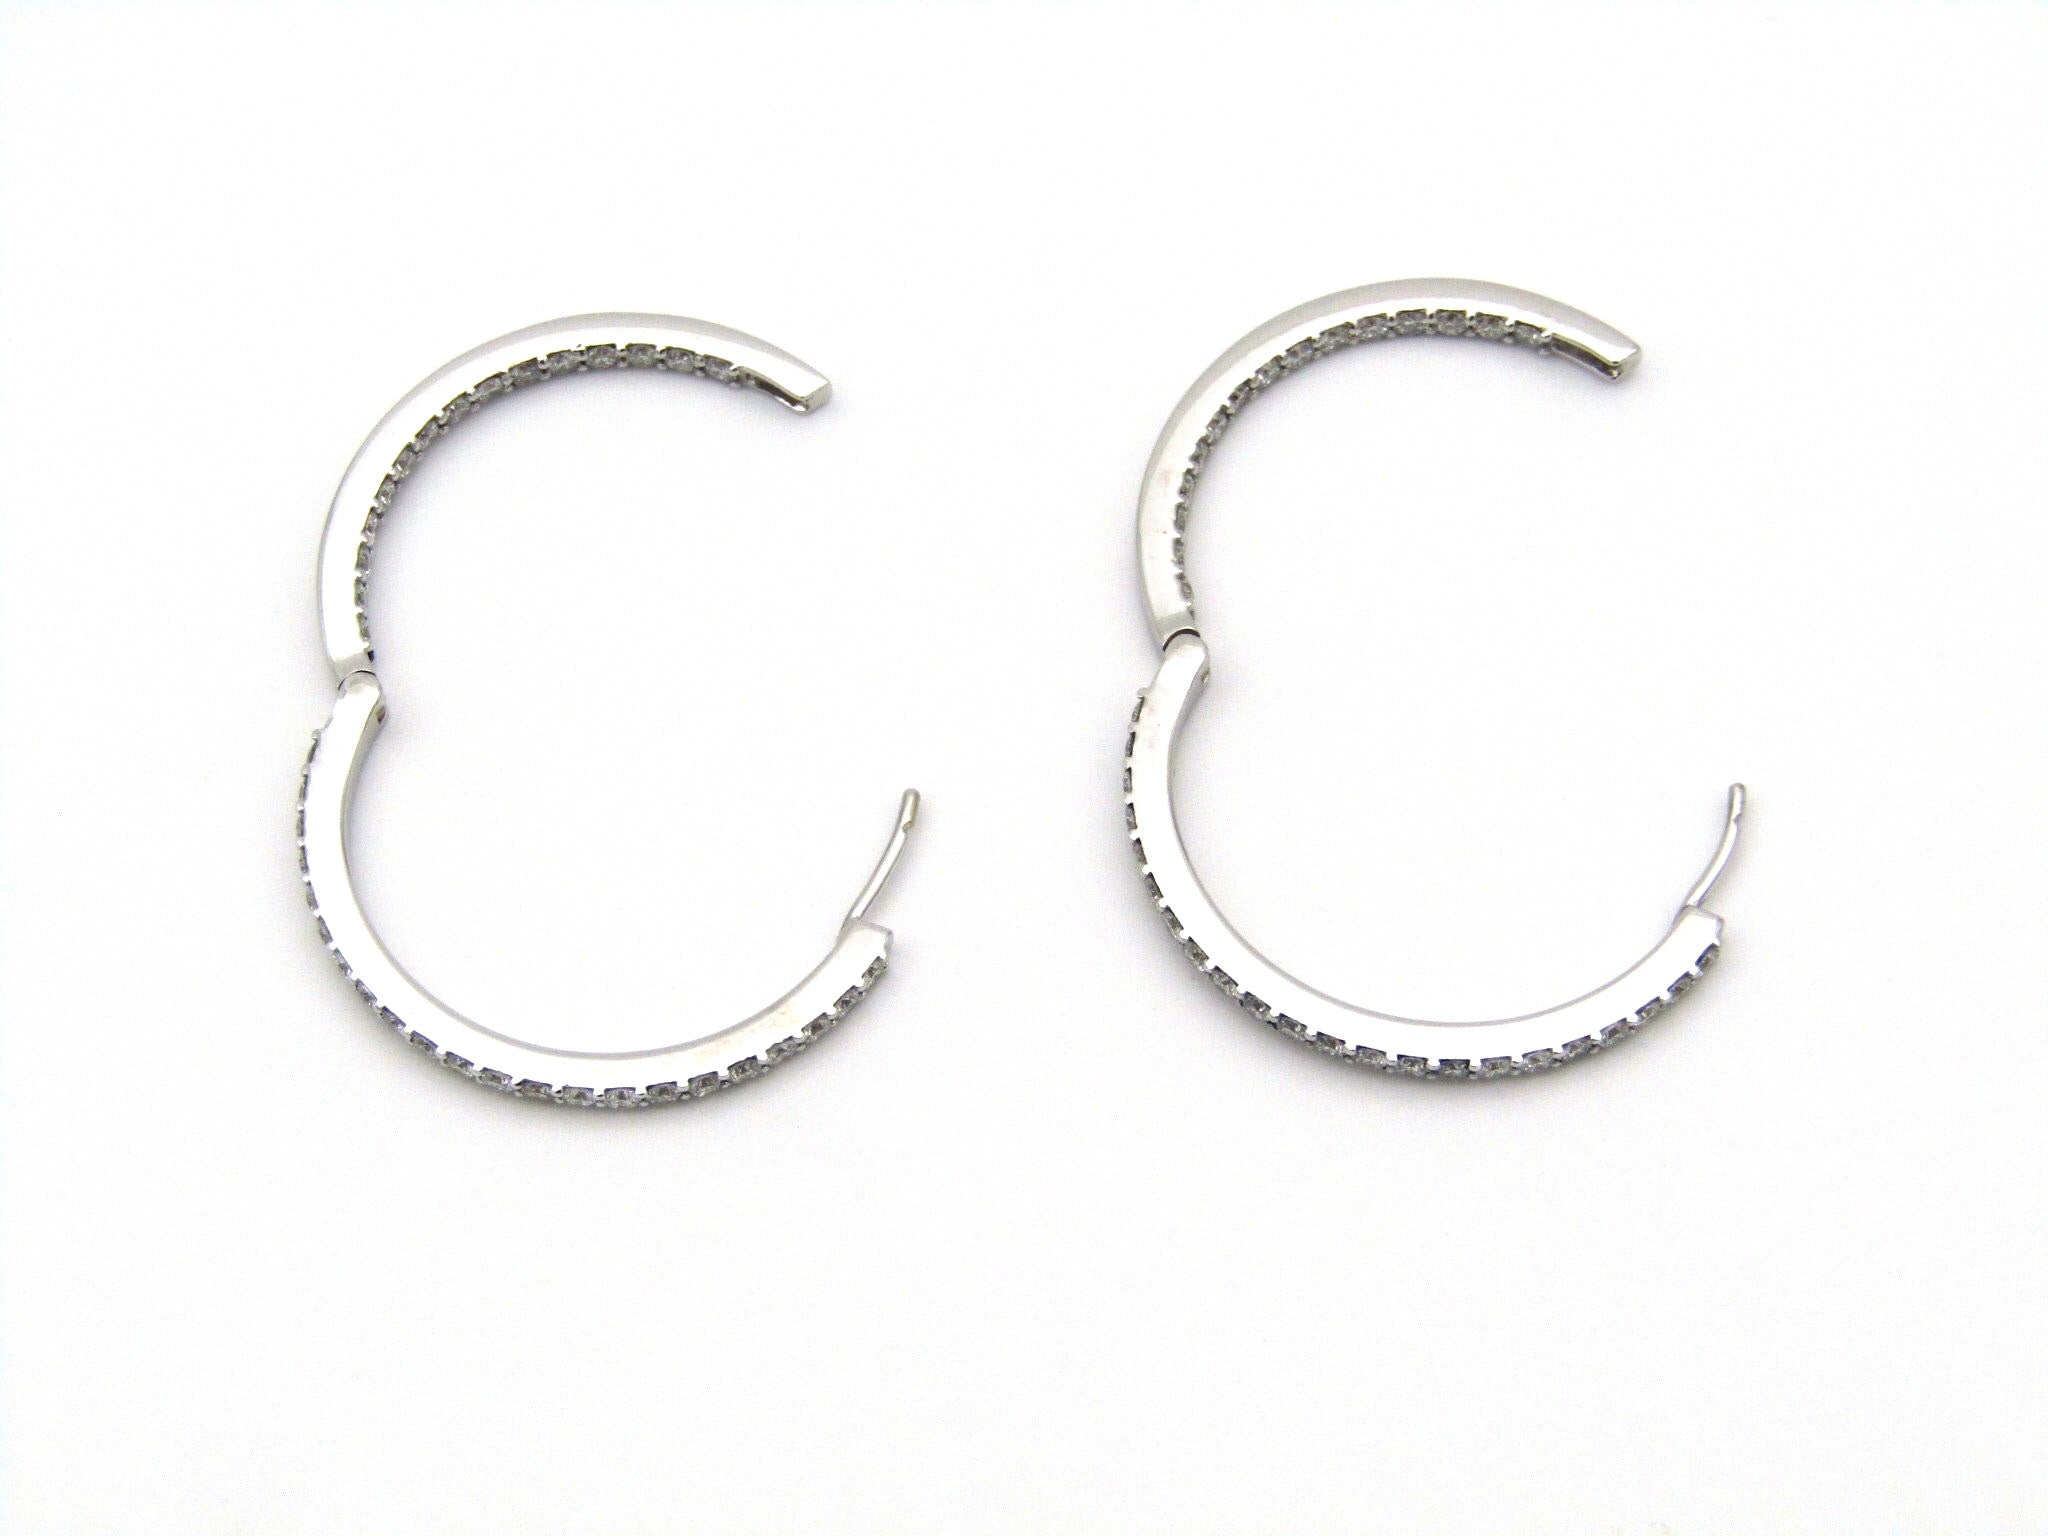 18K white gold diamond hoop earrings.